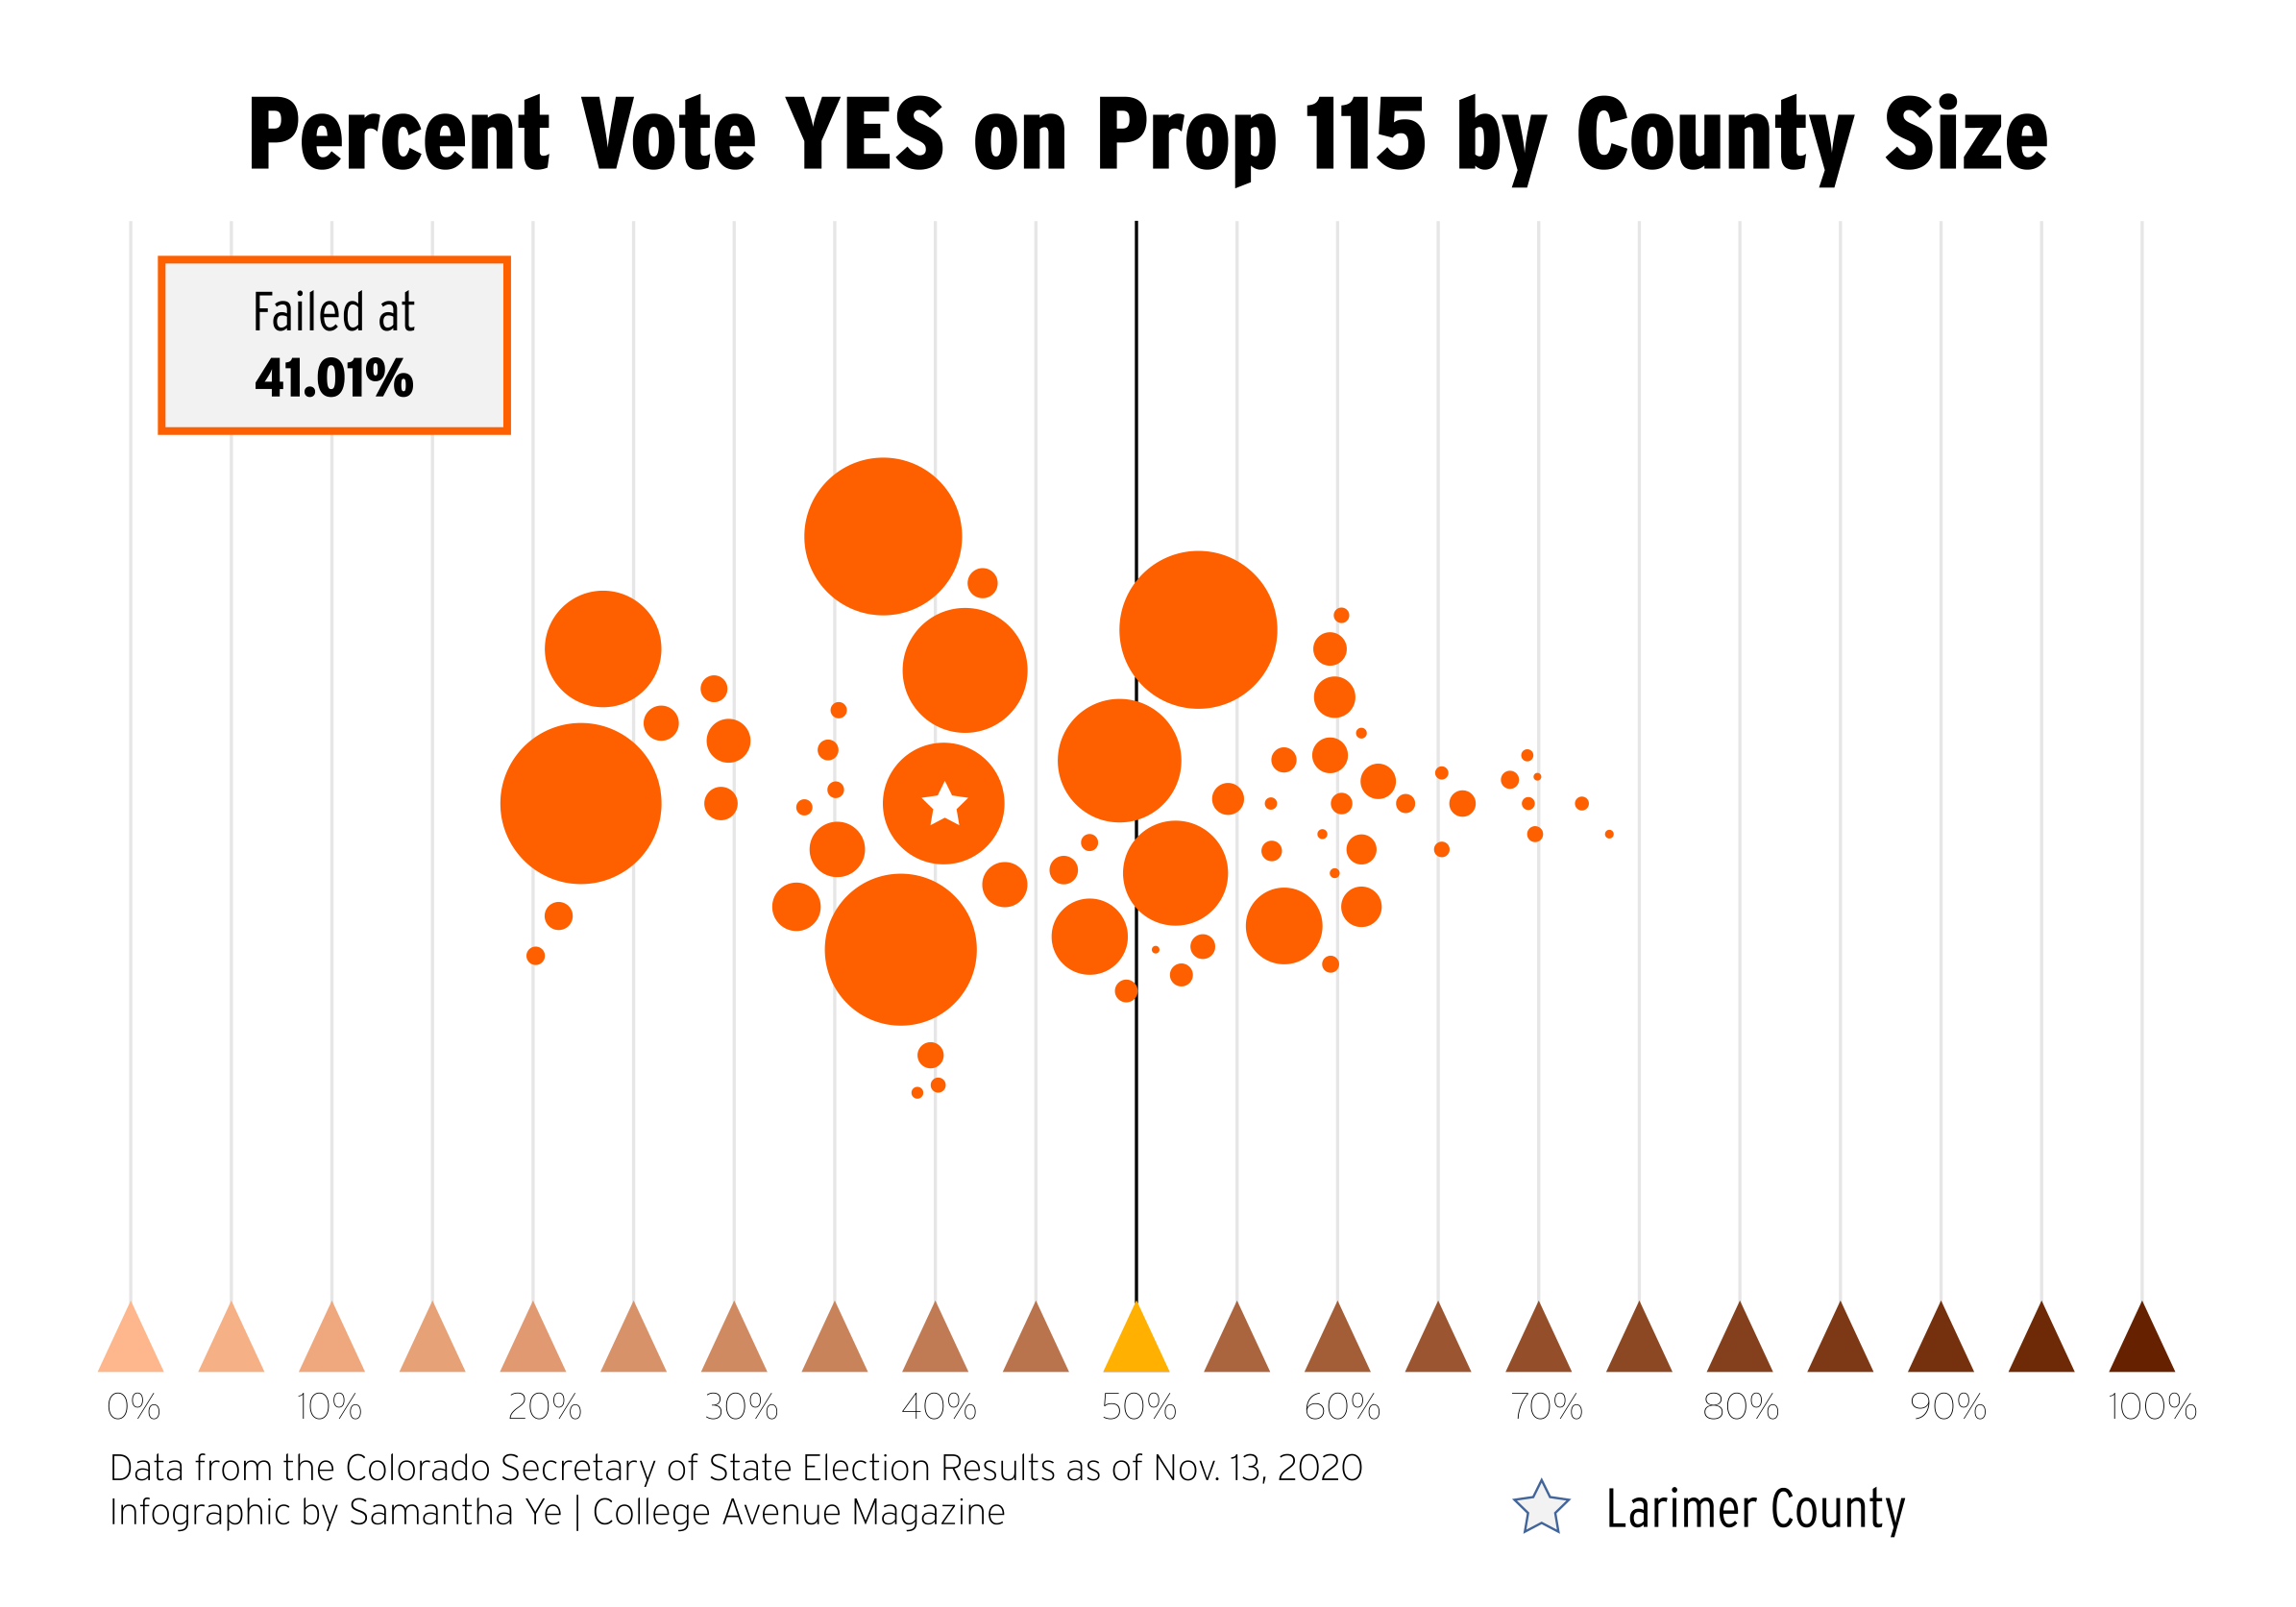 Percent Vote YES on Prop 115 by County Size